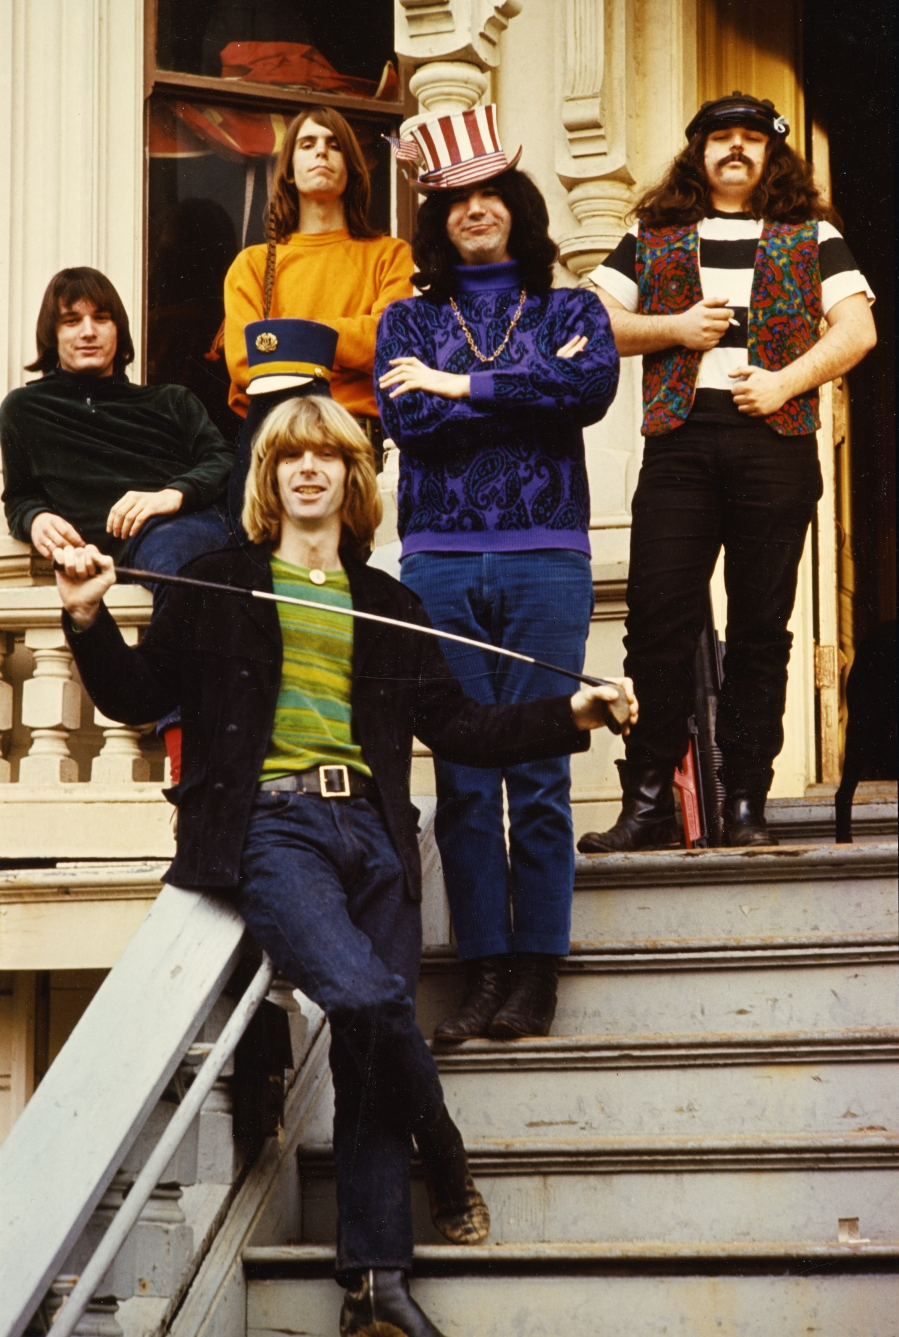 [The Grateful Dead on steps of 710 Ashbury Street headquarters,